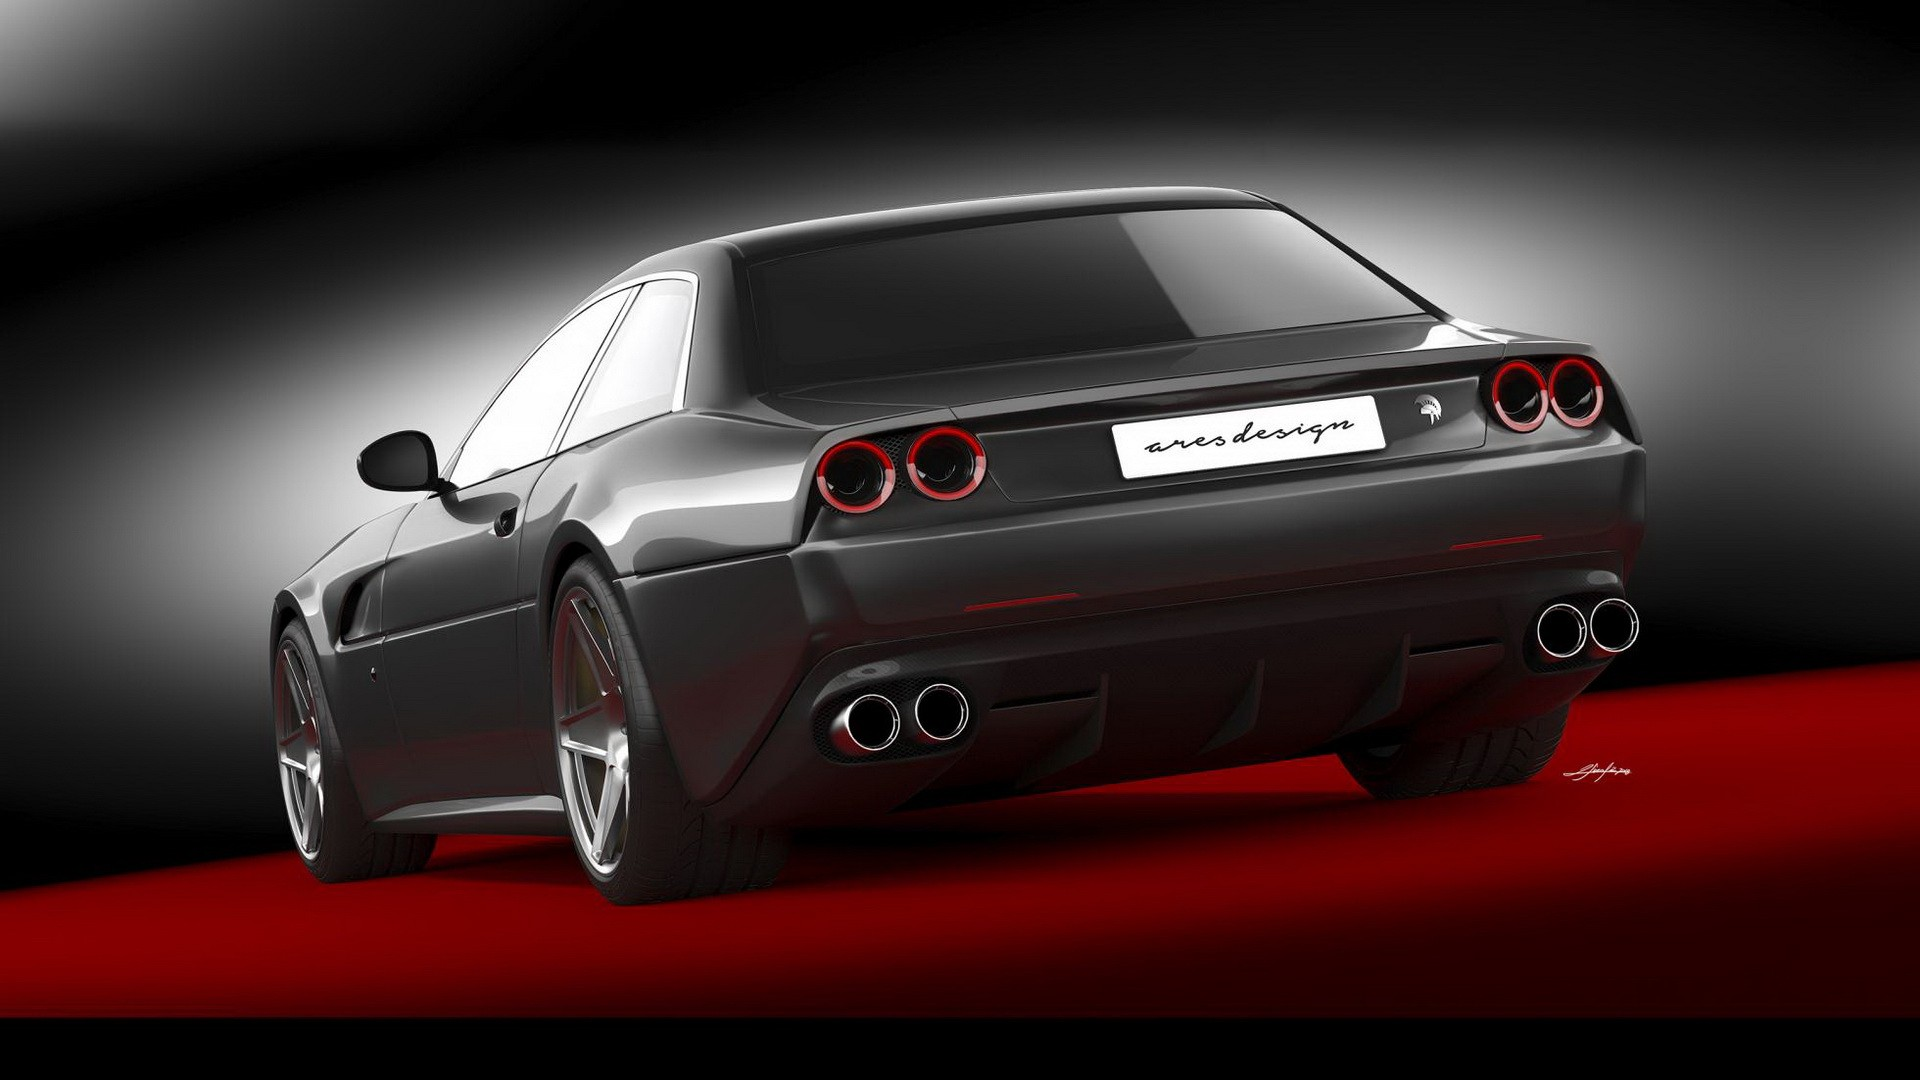 Ares Design Project Pony Is A Ferrari Gtc4lusso With 412